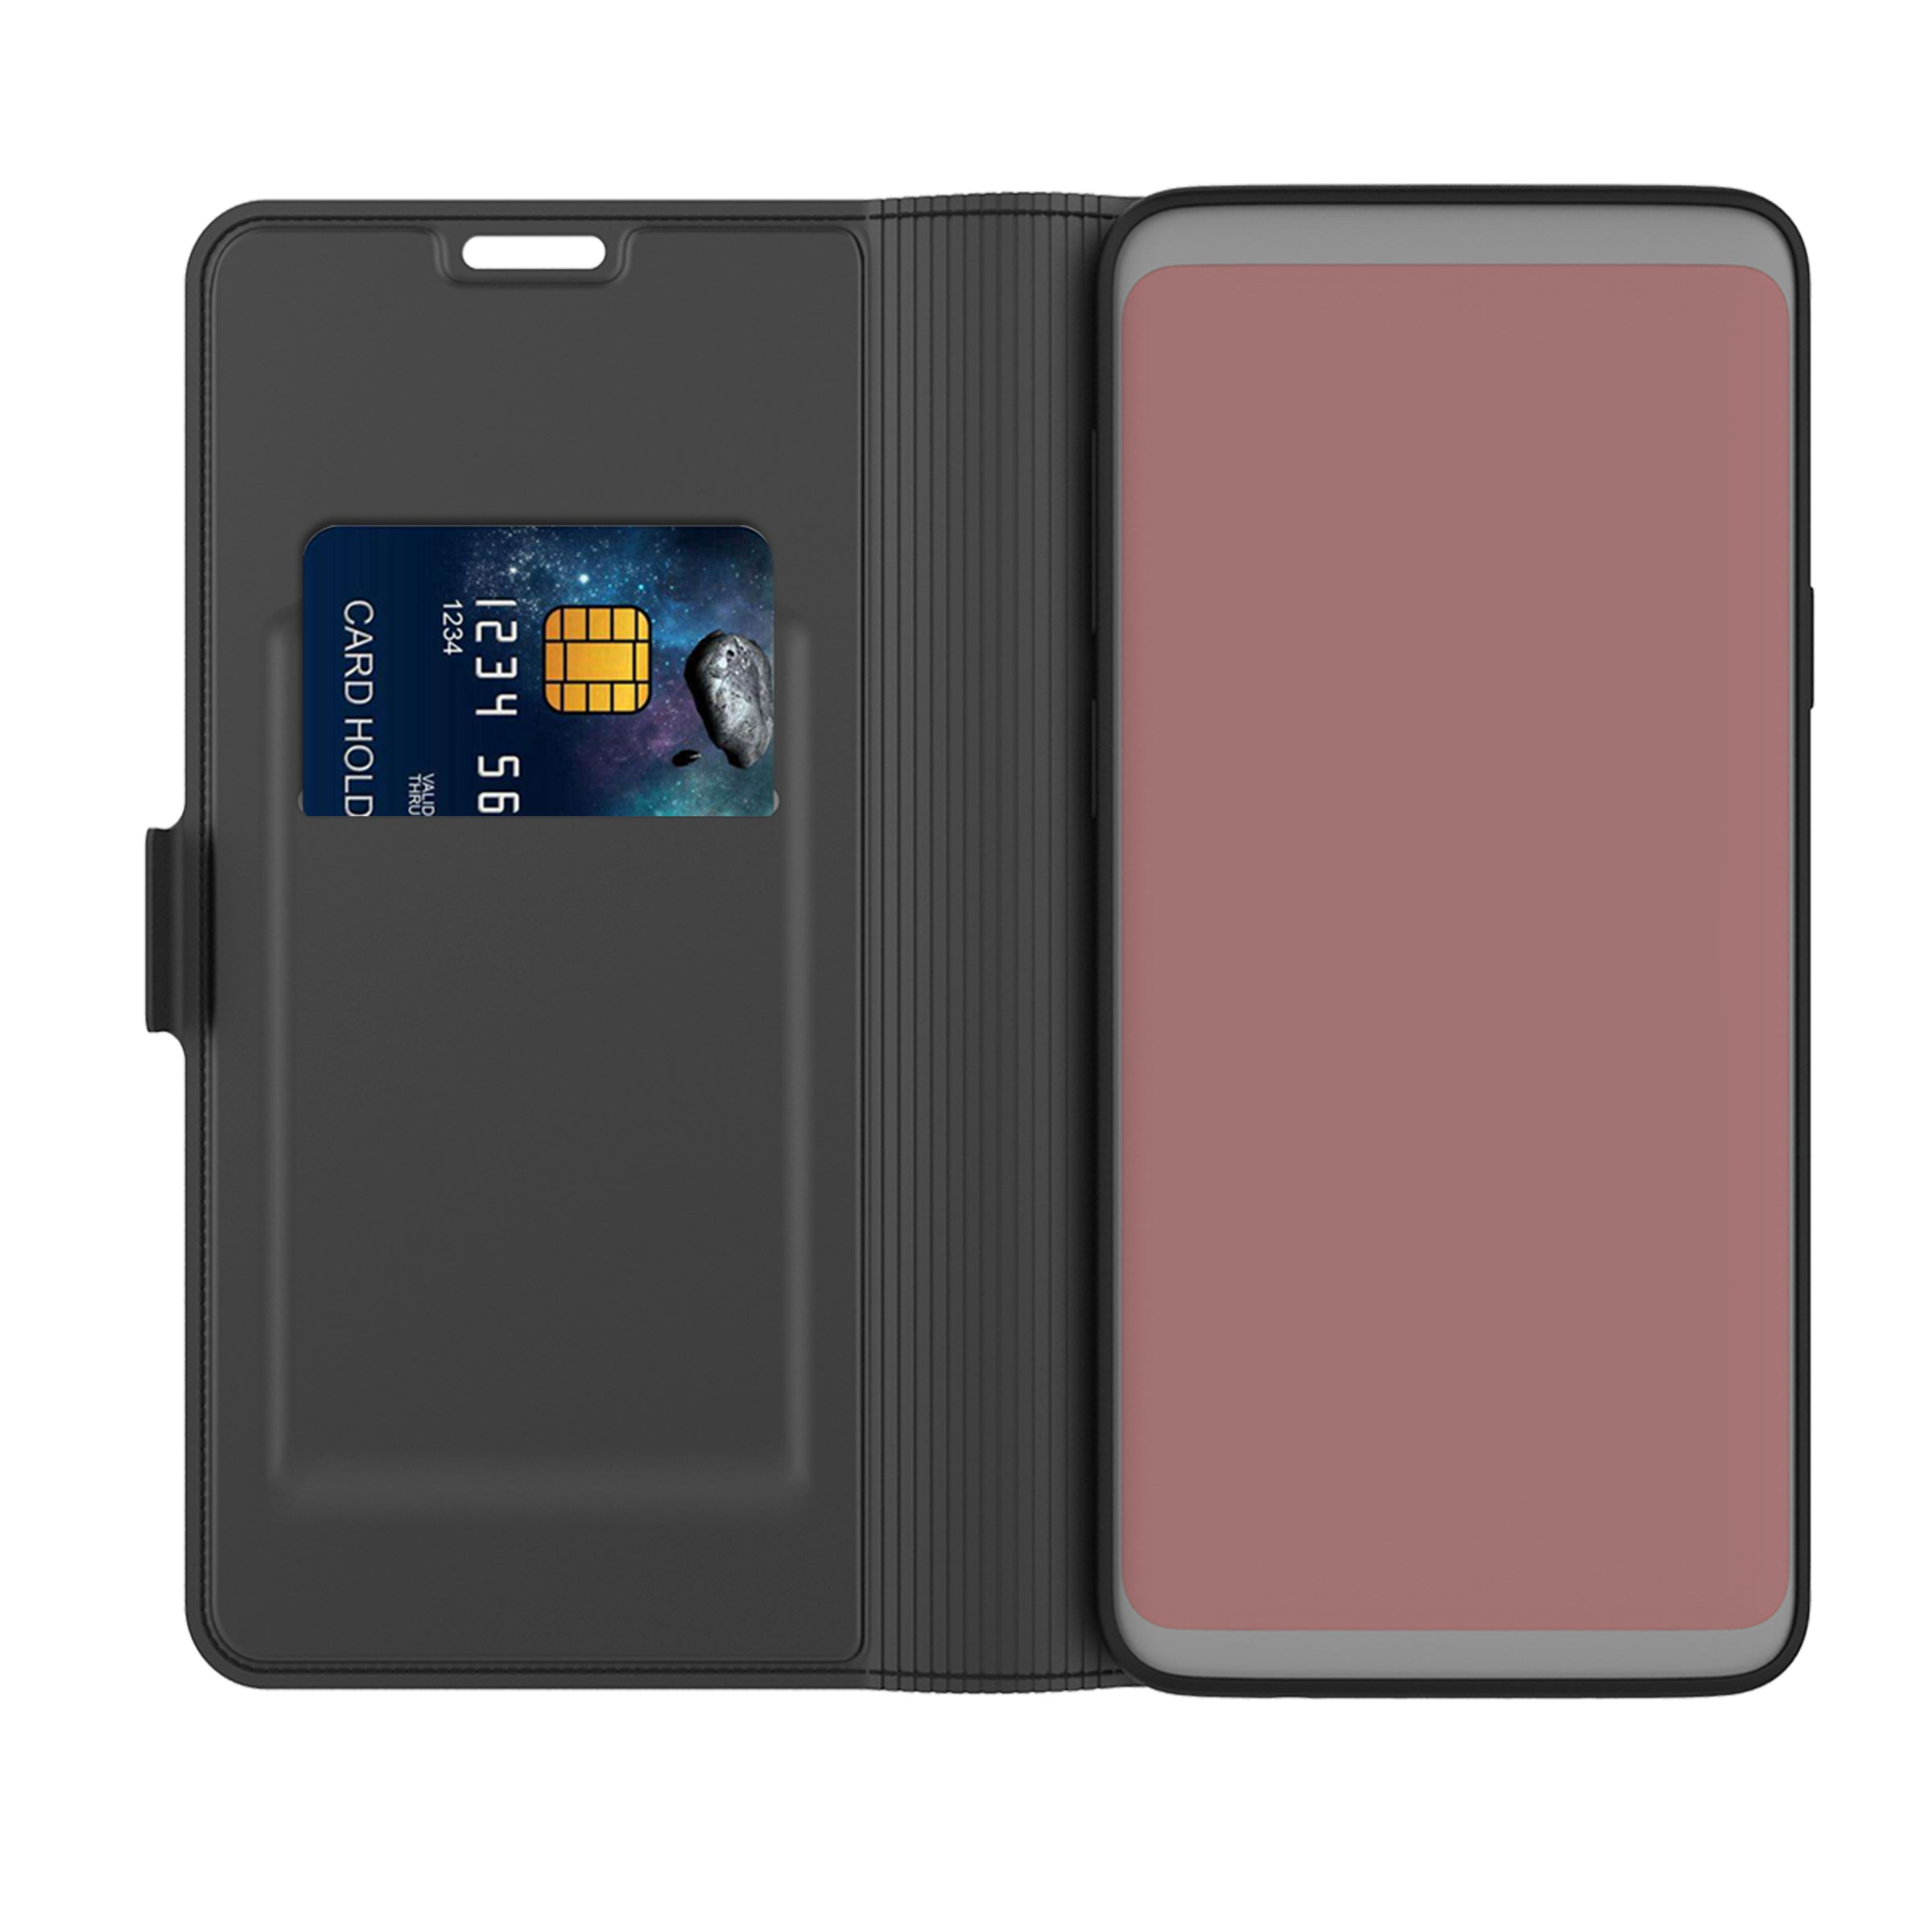 Bakeey for UMIDIGI A7 Pro Case Bussiness Magnetic Flip with Card Slot Foldable Stand Shockproof PU Leather Full Body Protective Case